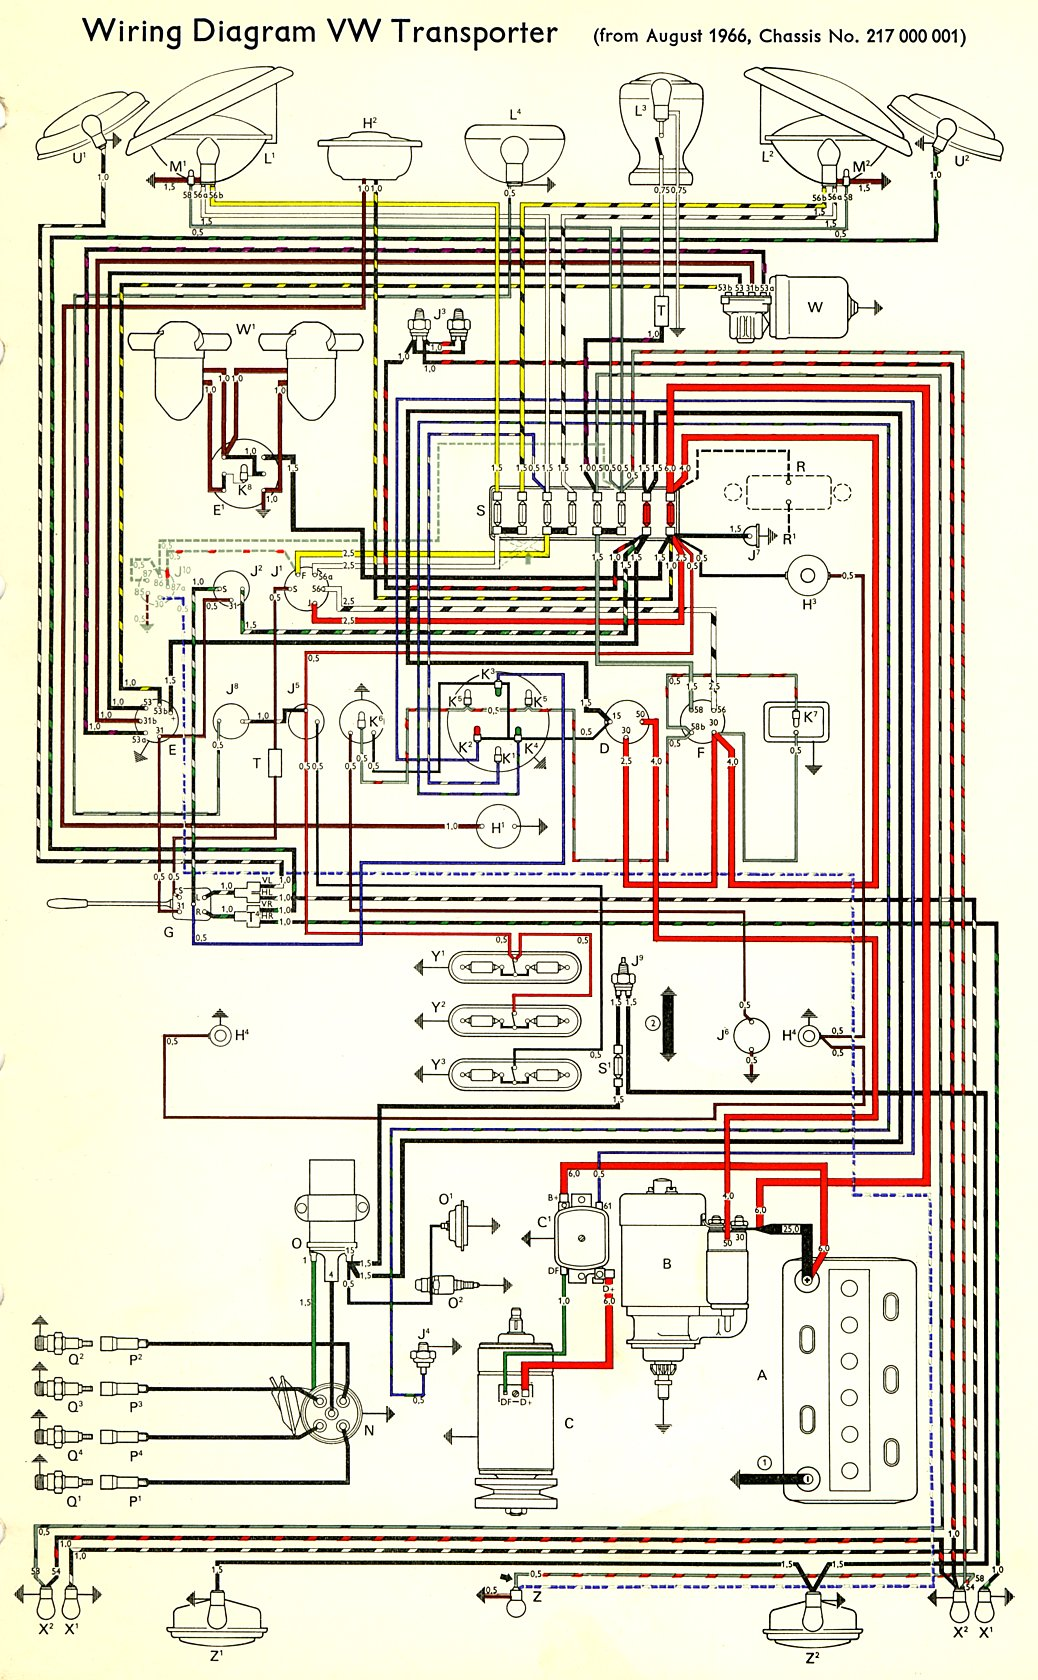 Bus on 69 Vw Beetle Wiring Diagram